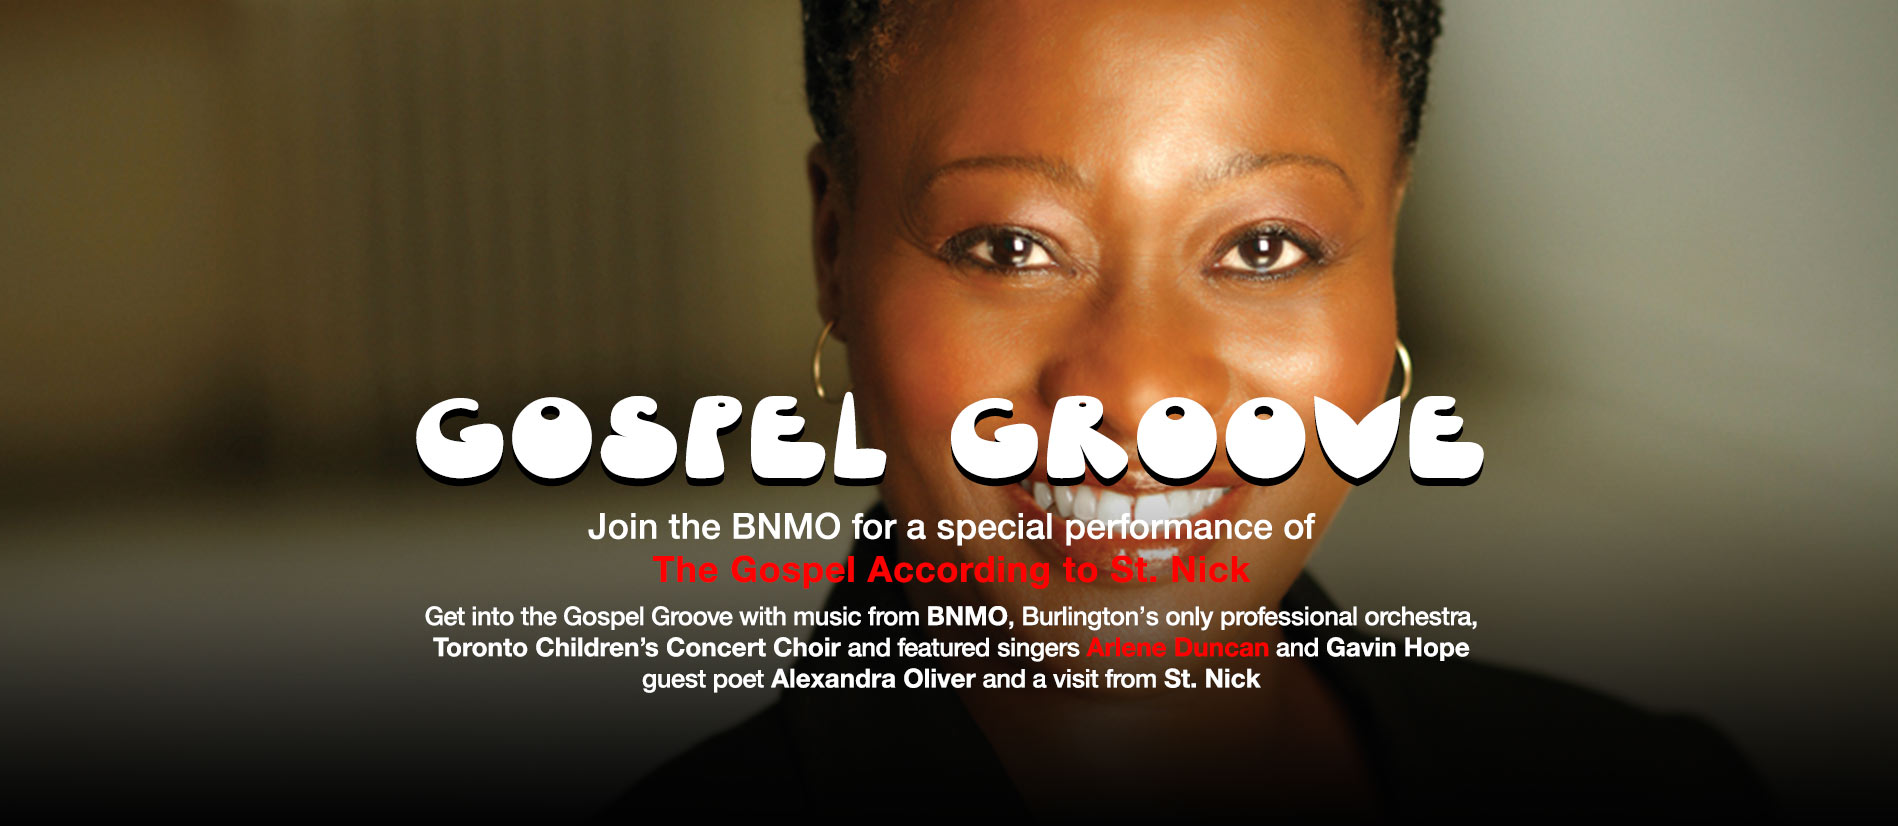 Gospel Groove at Port Nelson United Church with BNMO and Arlene Duncan